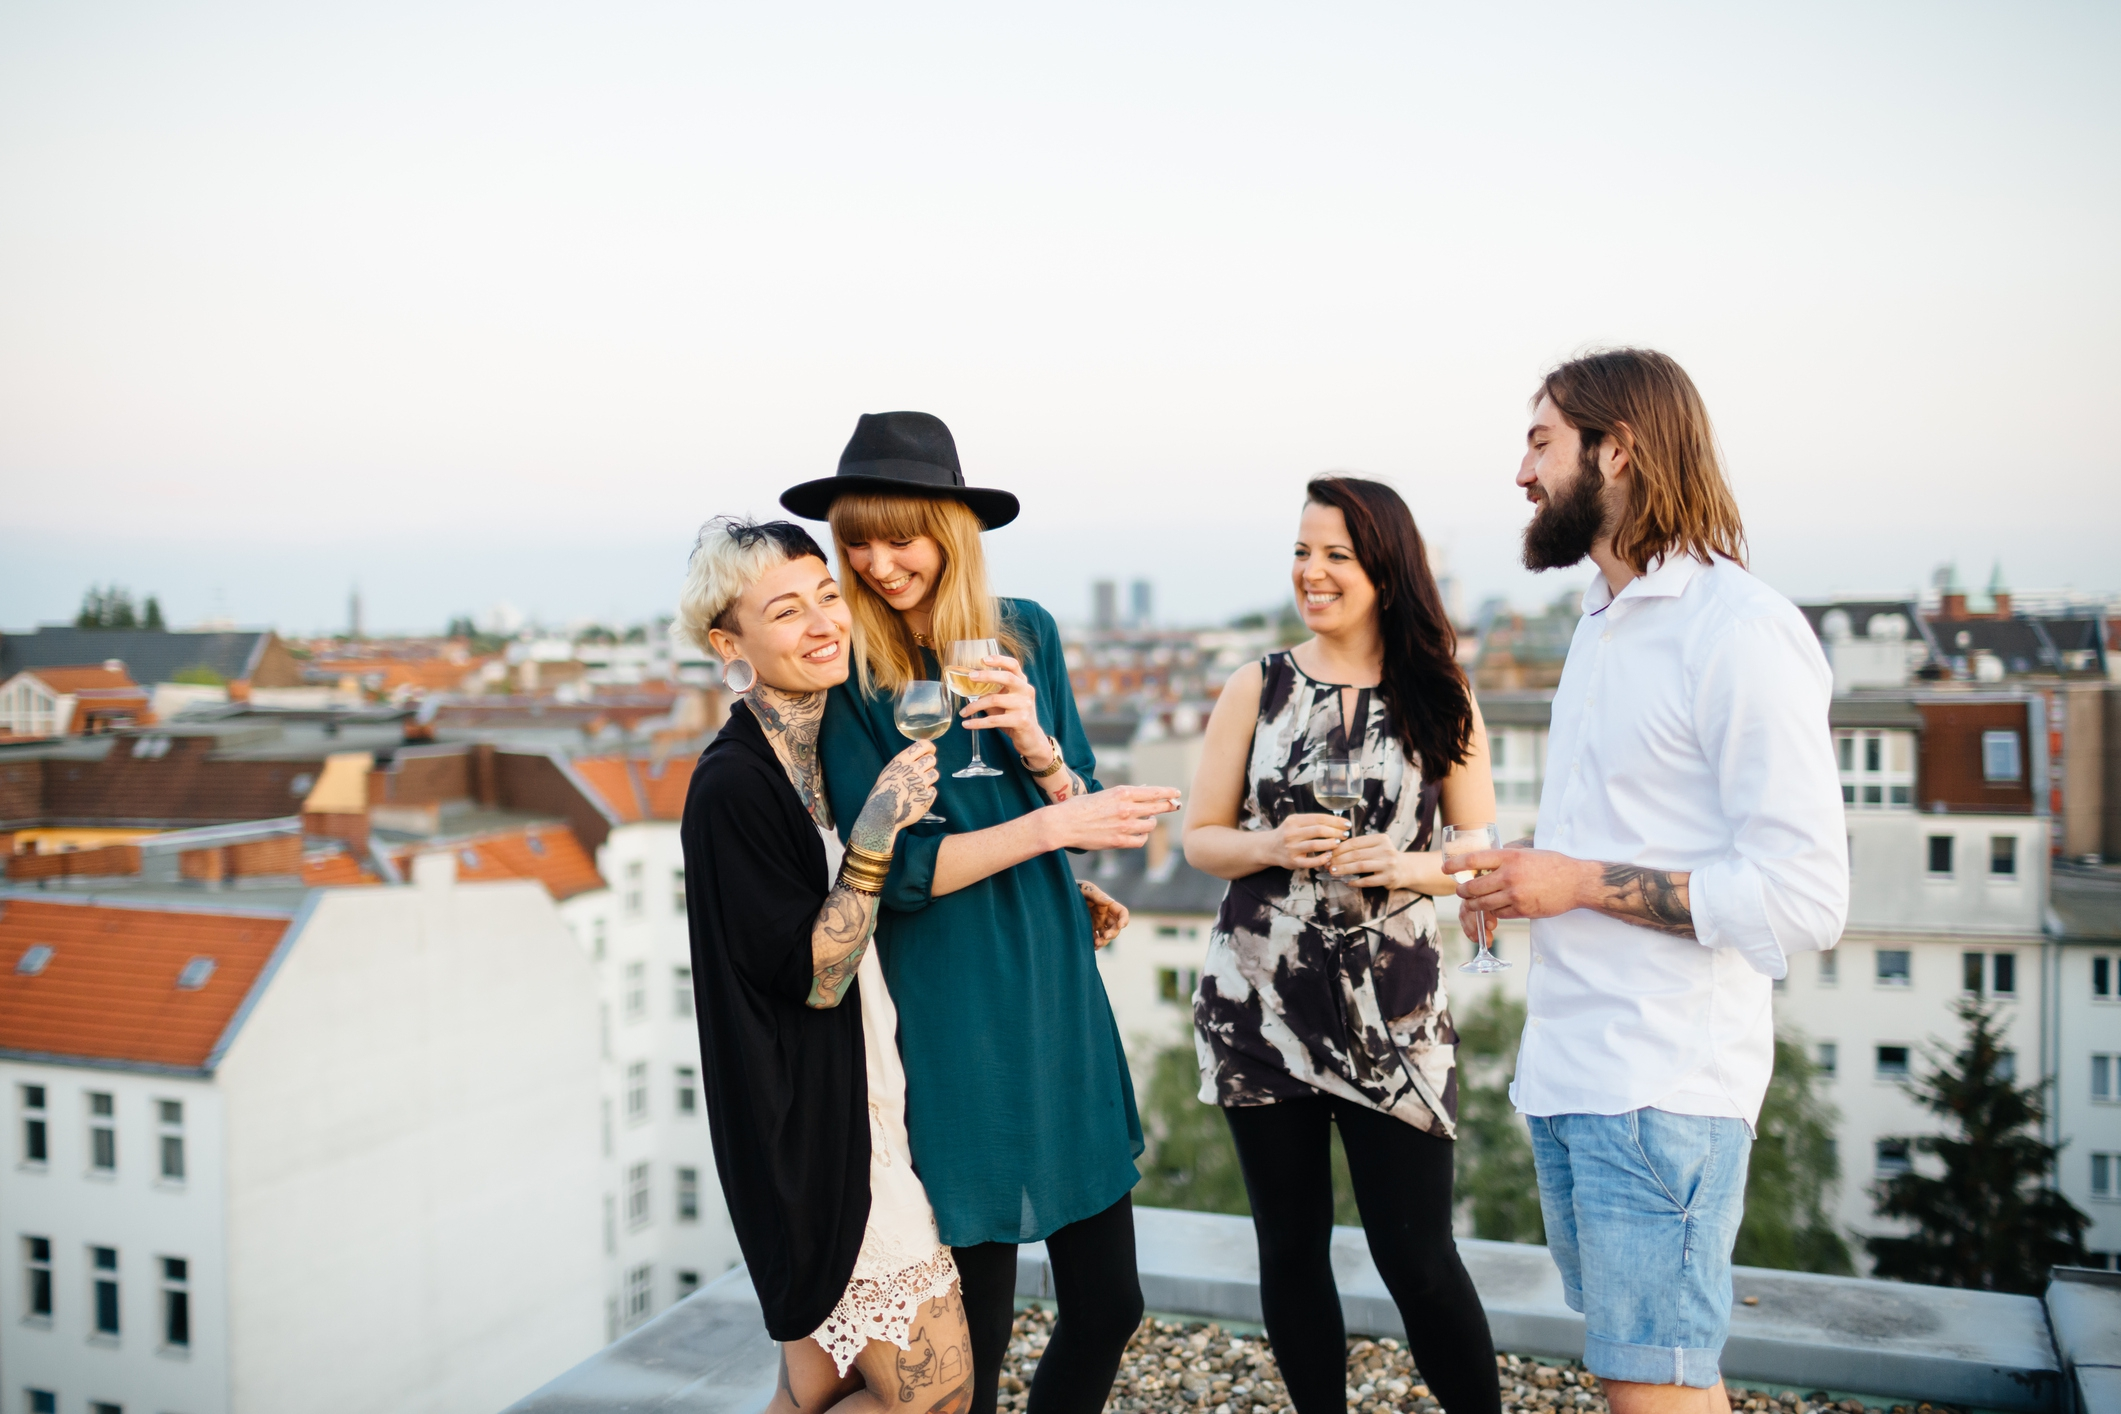 Friends standing on rooftop and having fun